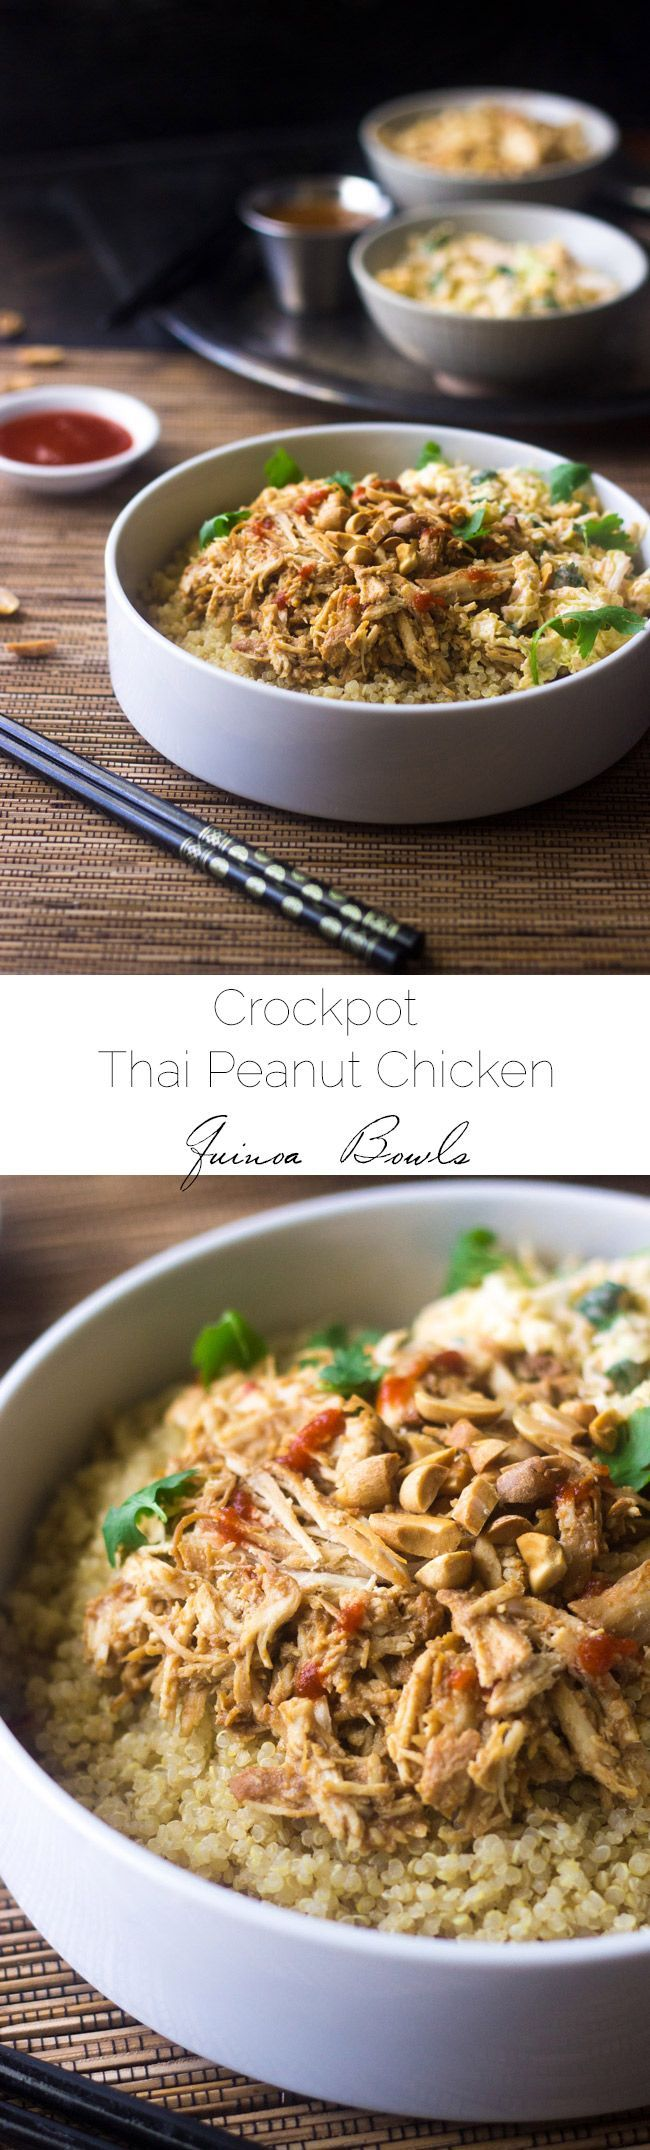 Crockpot Thai Peanut Chicken Quinoa Bowls - An easy, weeknight friendly dinner where the slow cooker does all the work for you! It tastes like your favorite Thai restaurant, but is healthy and gluten free! | Foodfaithfitness.com | #recipe: